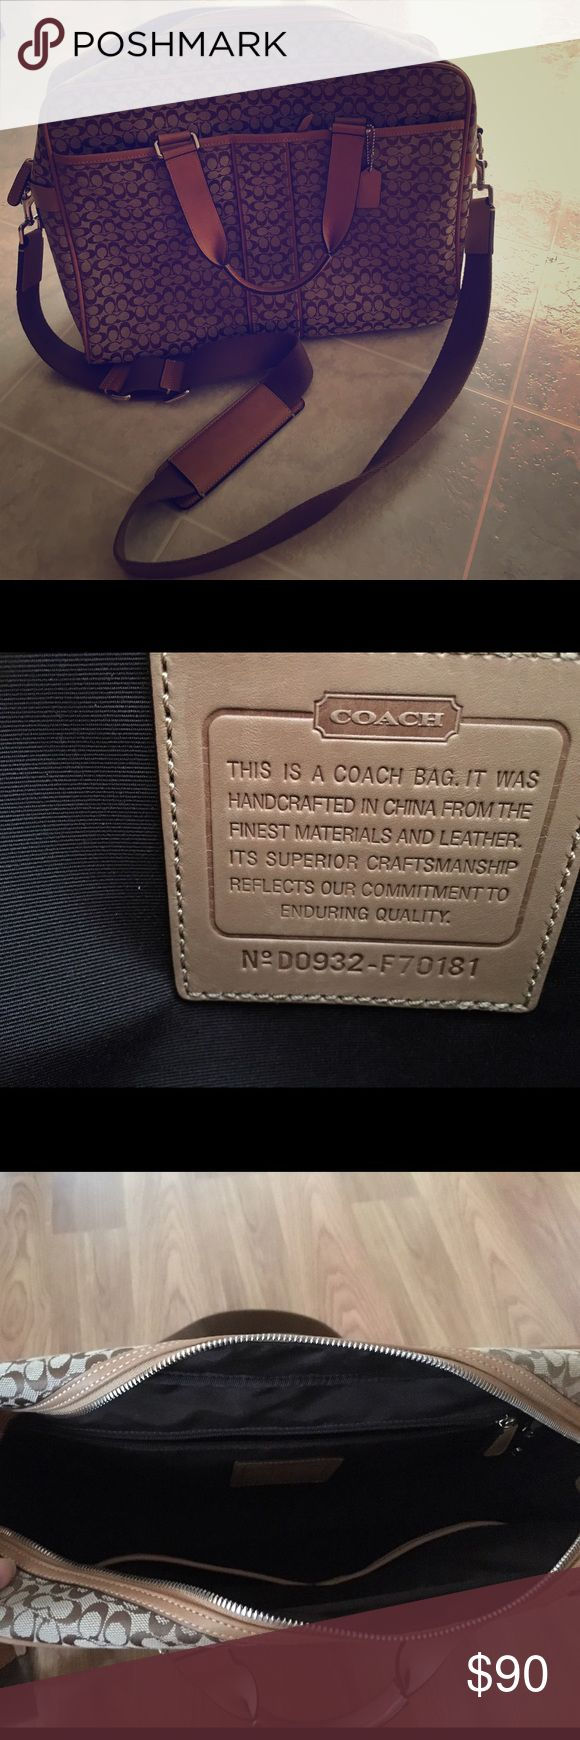 Coach travel bag! Pristine condition! Rarely used! Coach Bags Travel Bags